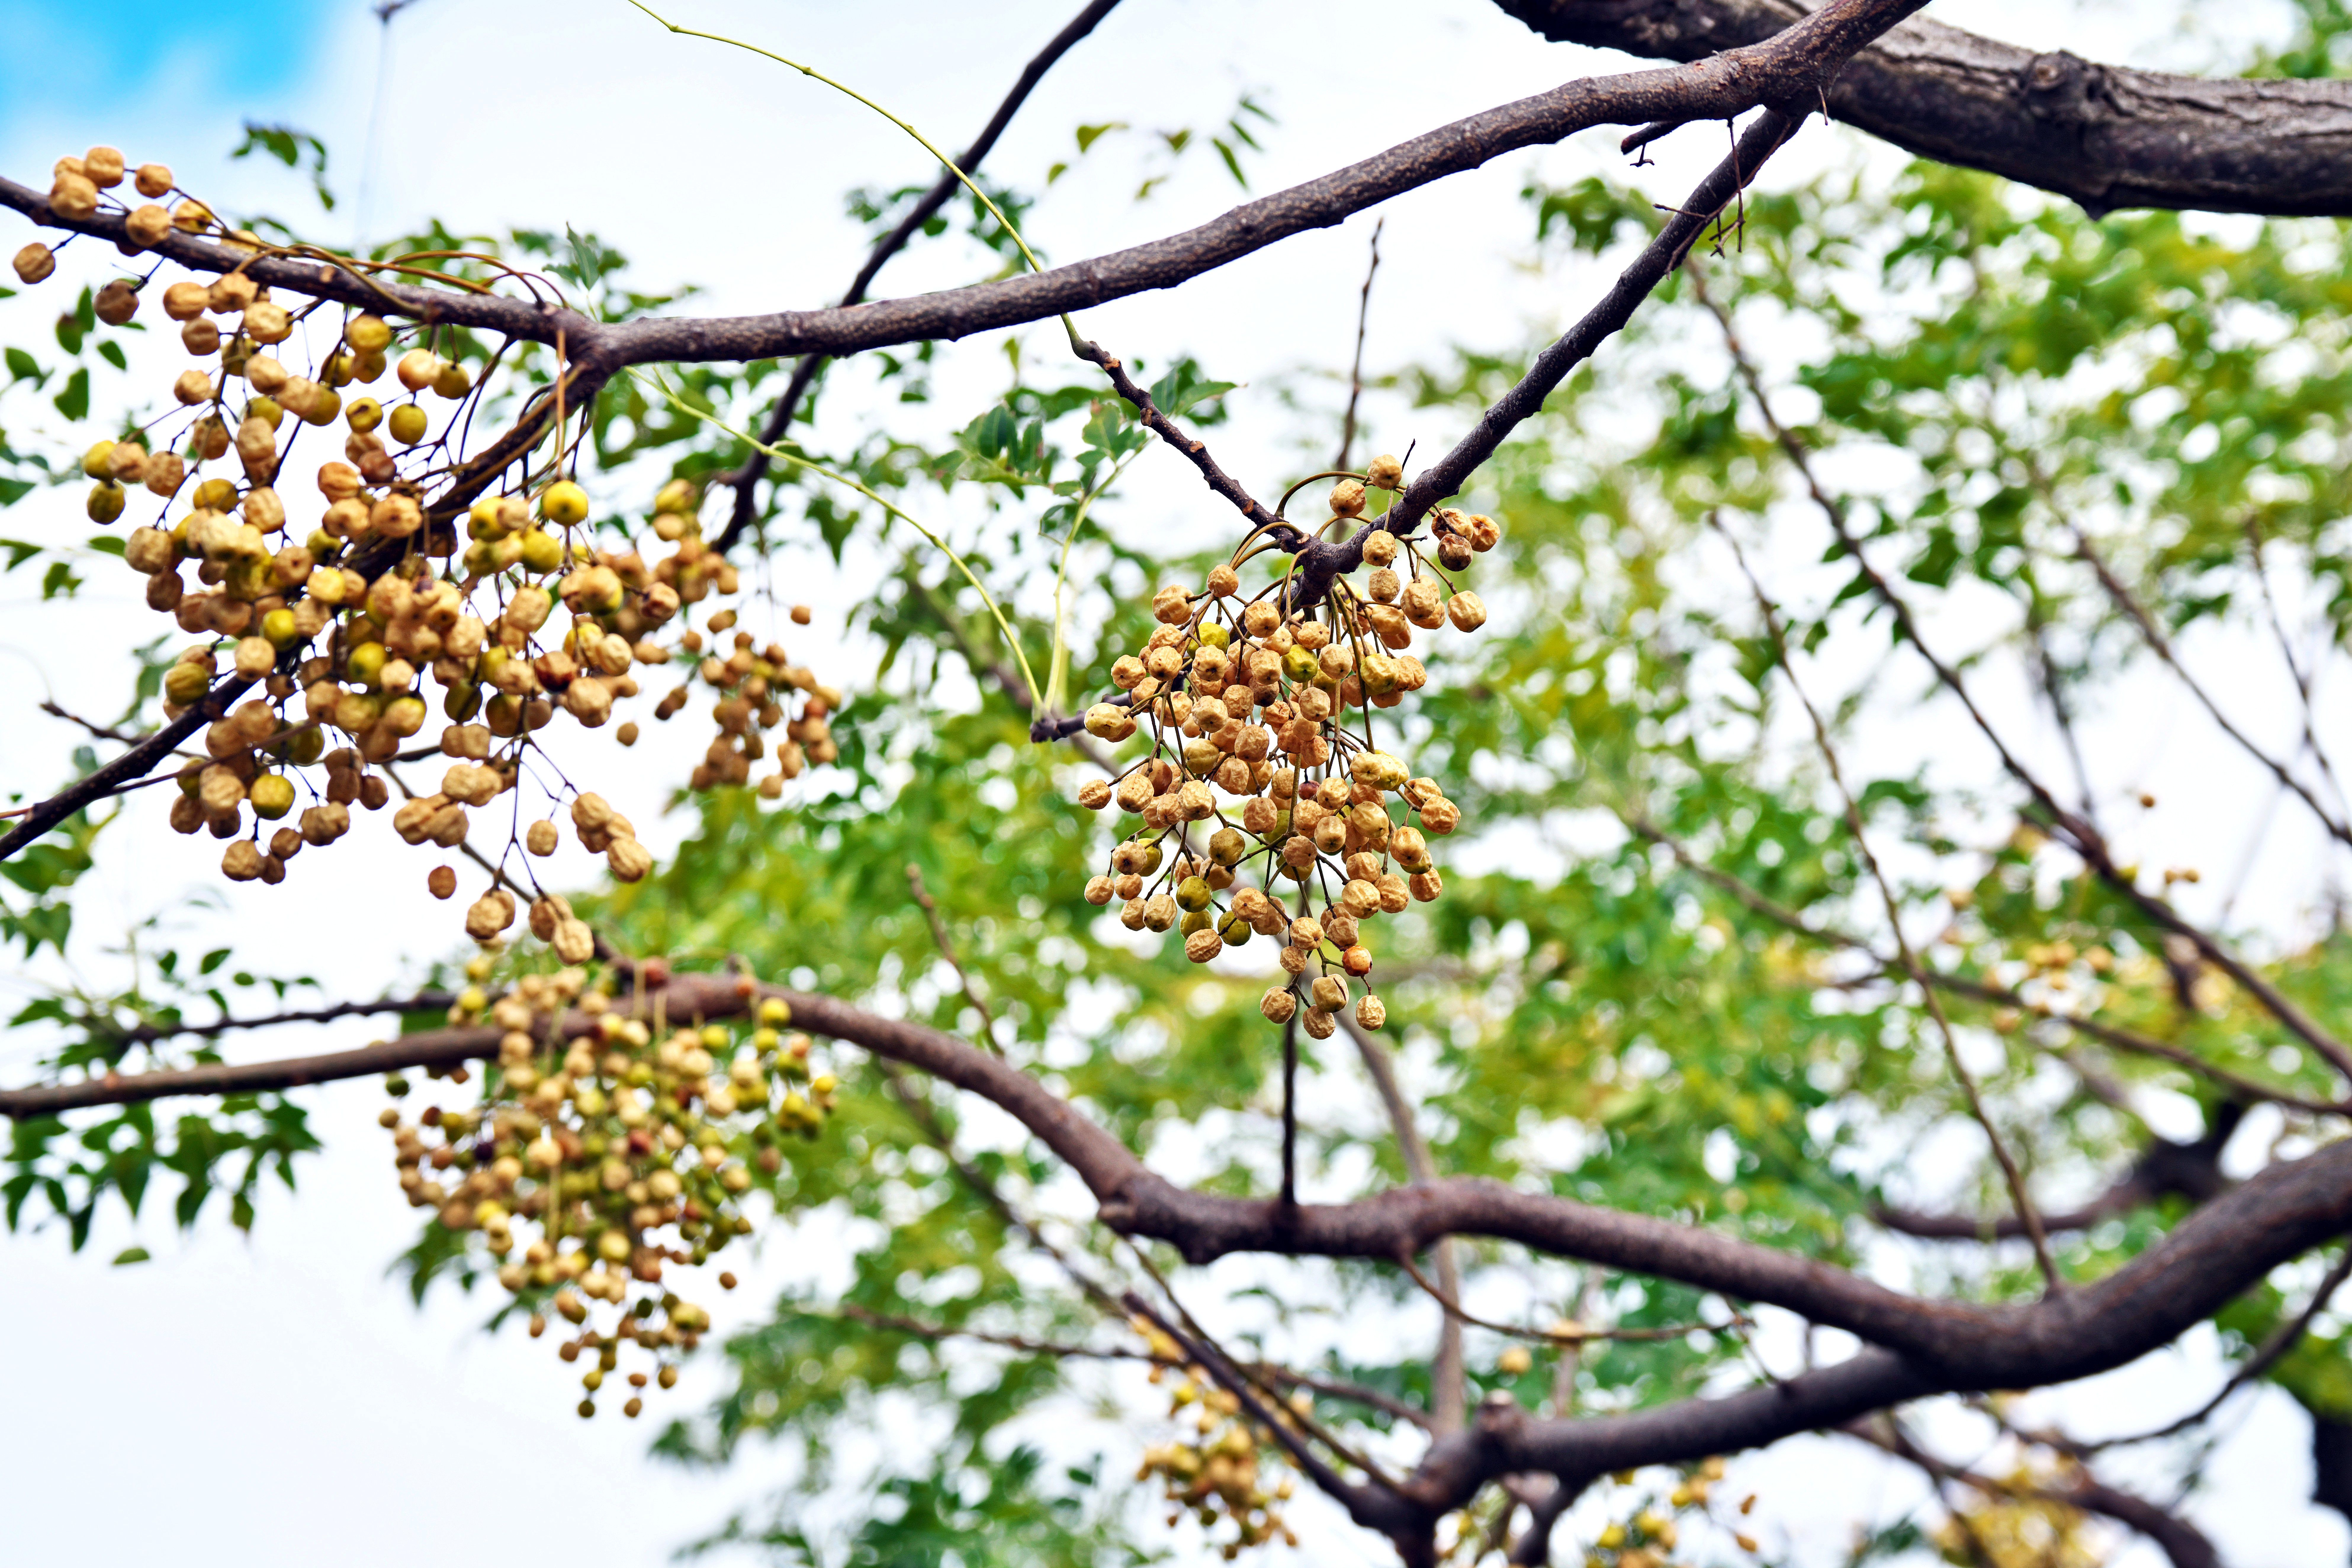 The poisonous fruit of Melia azedarach, called the Chinaberry